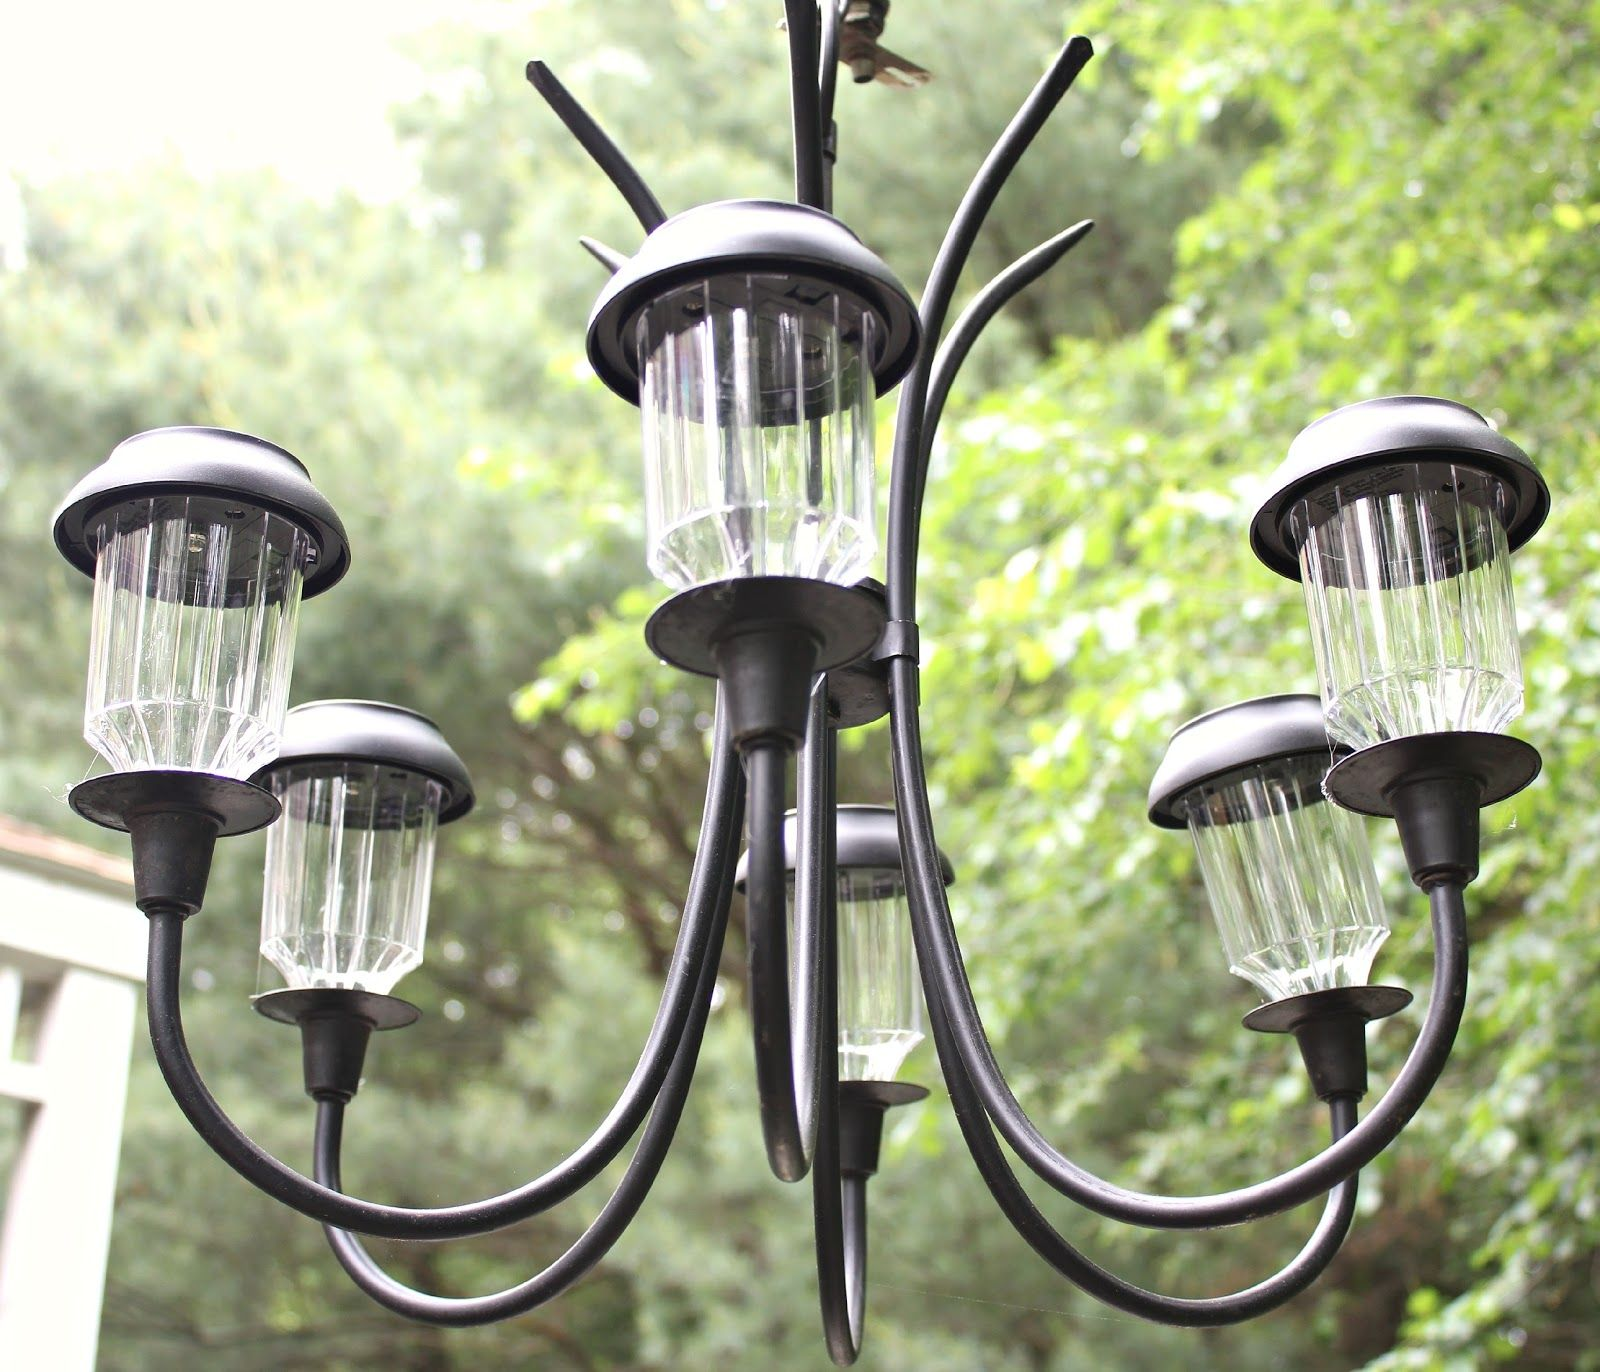 5 Pathway Lighting Tips Ideas Walkway Lights Guide: How To Turn A Chandelier Into A Garden Light